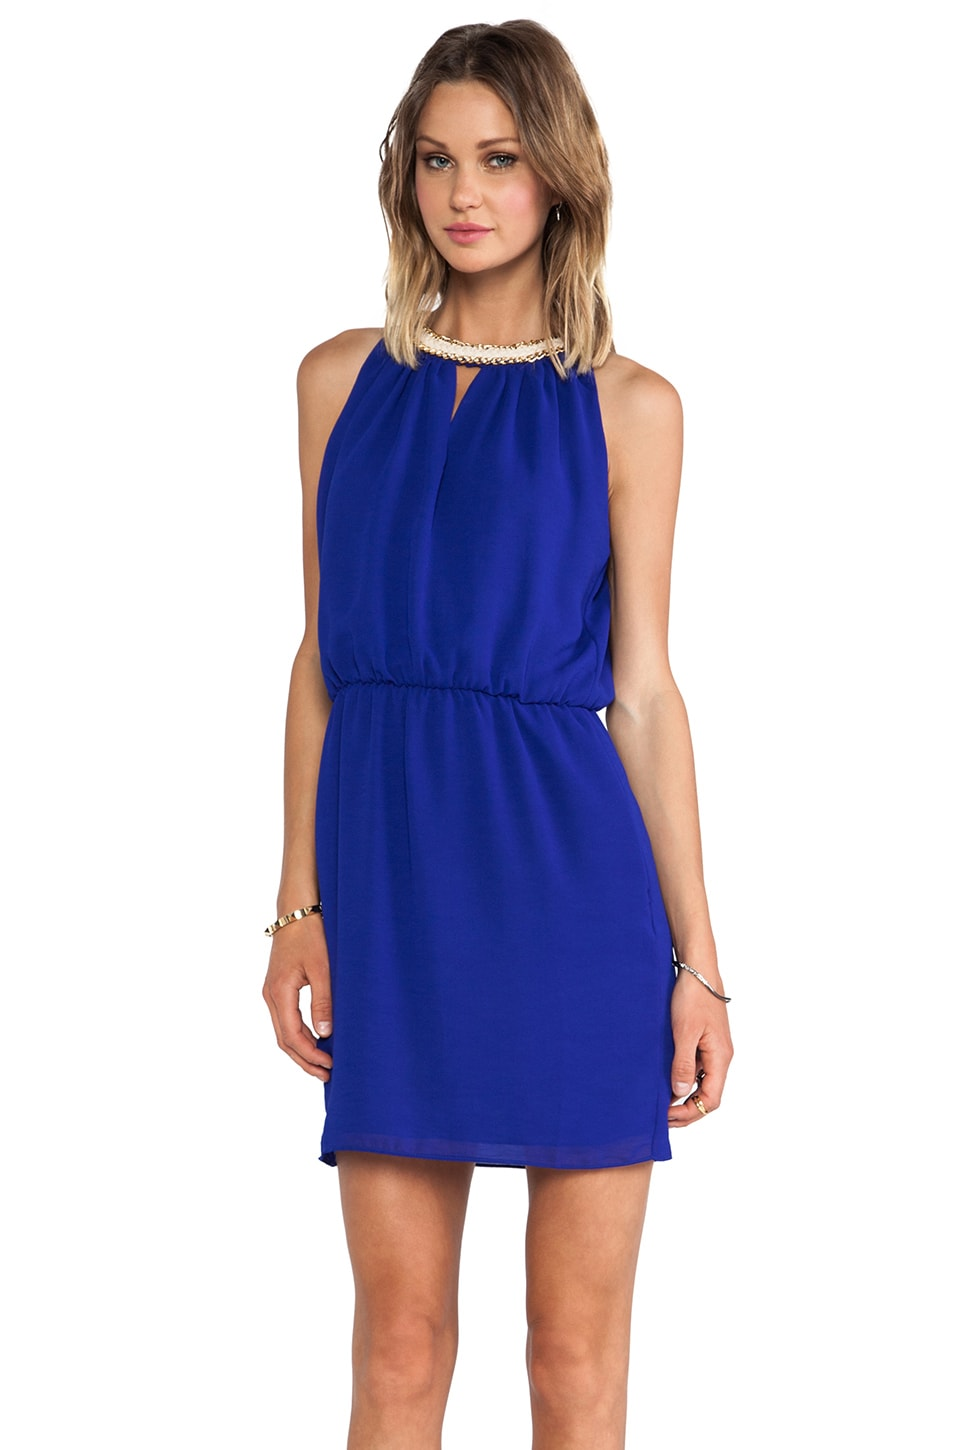 Greylin Betty Chain Dress in Cobalt